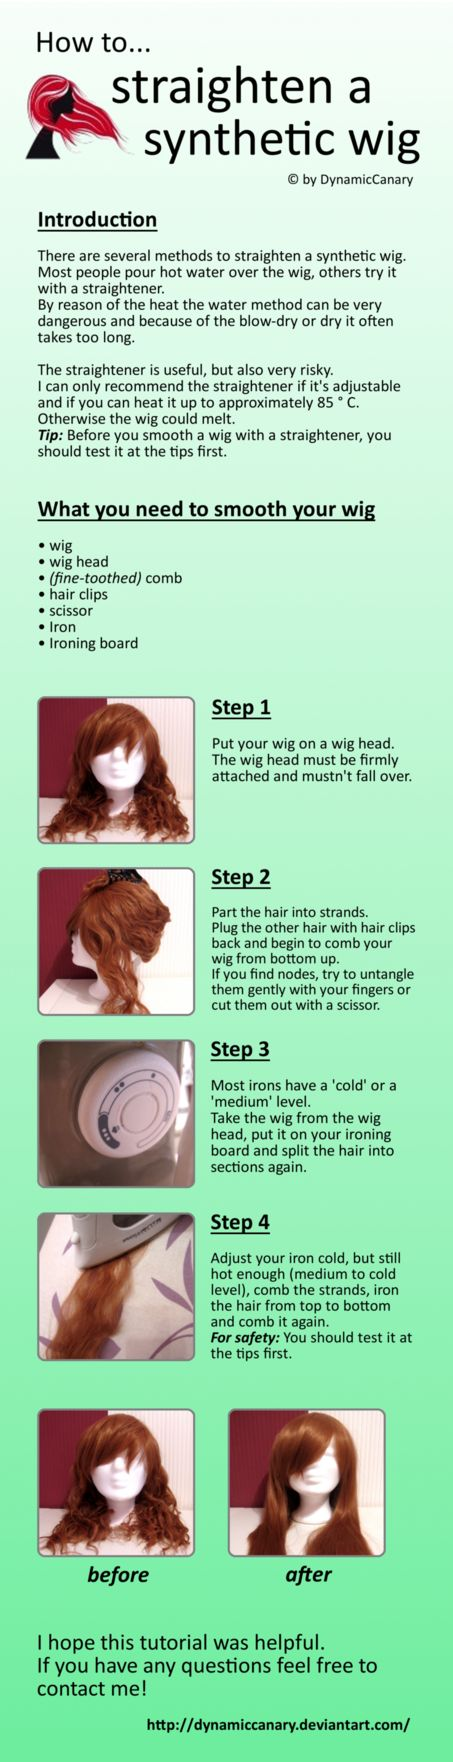 Tutorial: How to straighten a synthetic wig by DynamicCanary